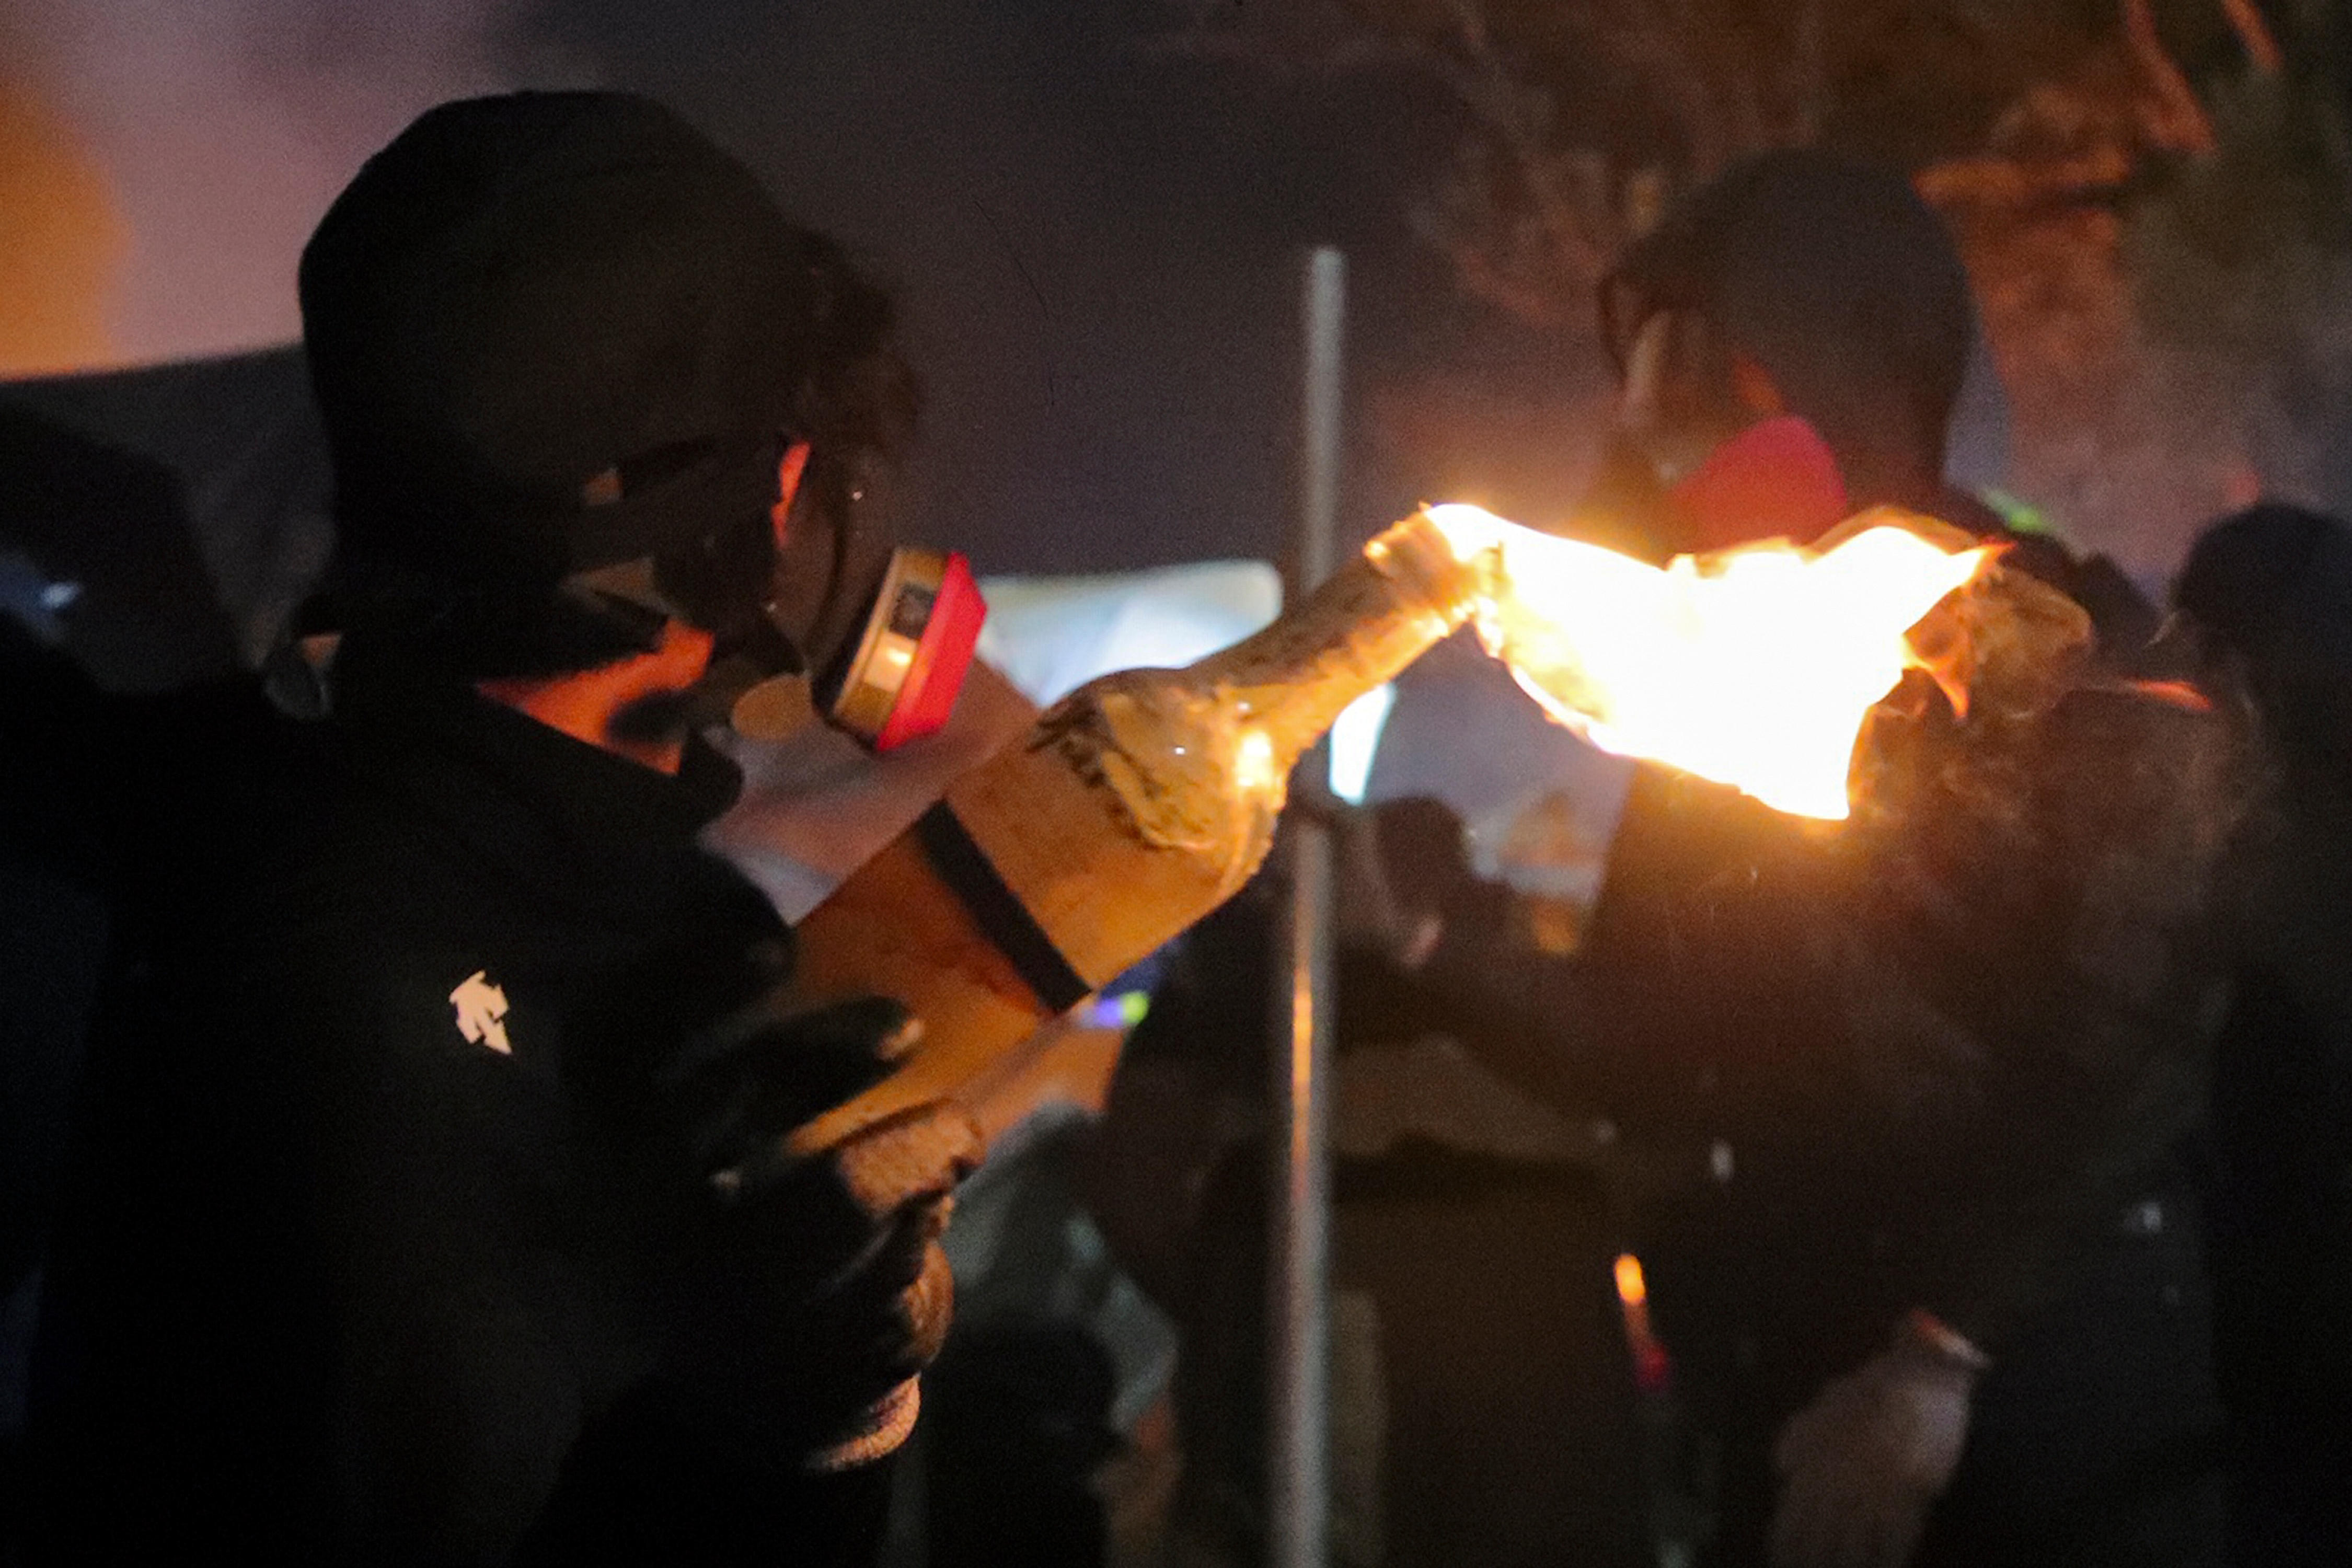 A student holds a molotov cocktail during clashes at the Chinese University.